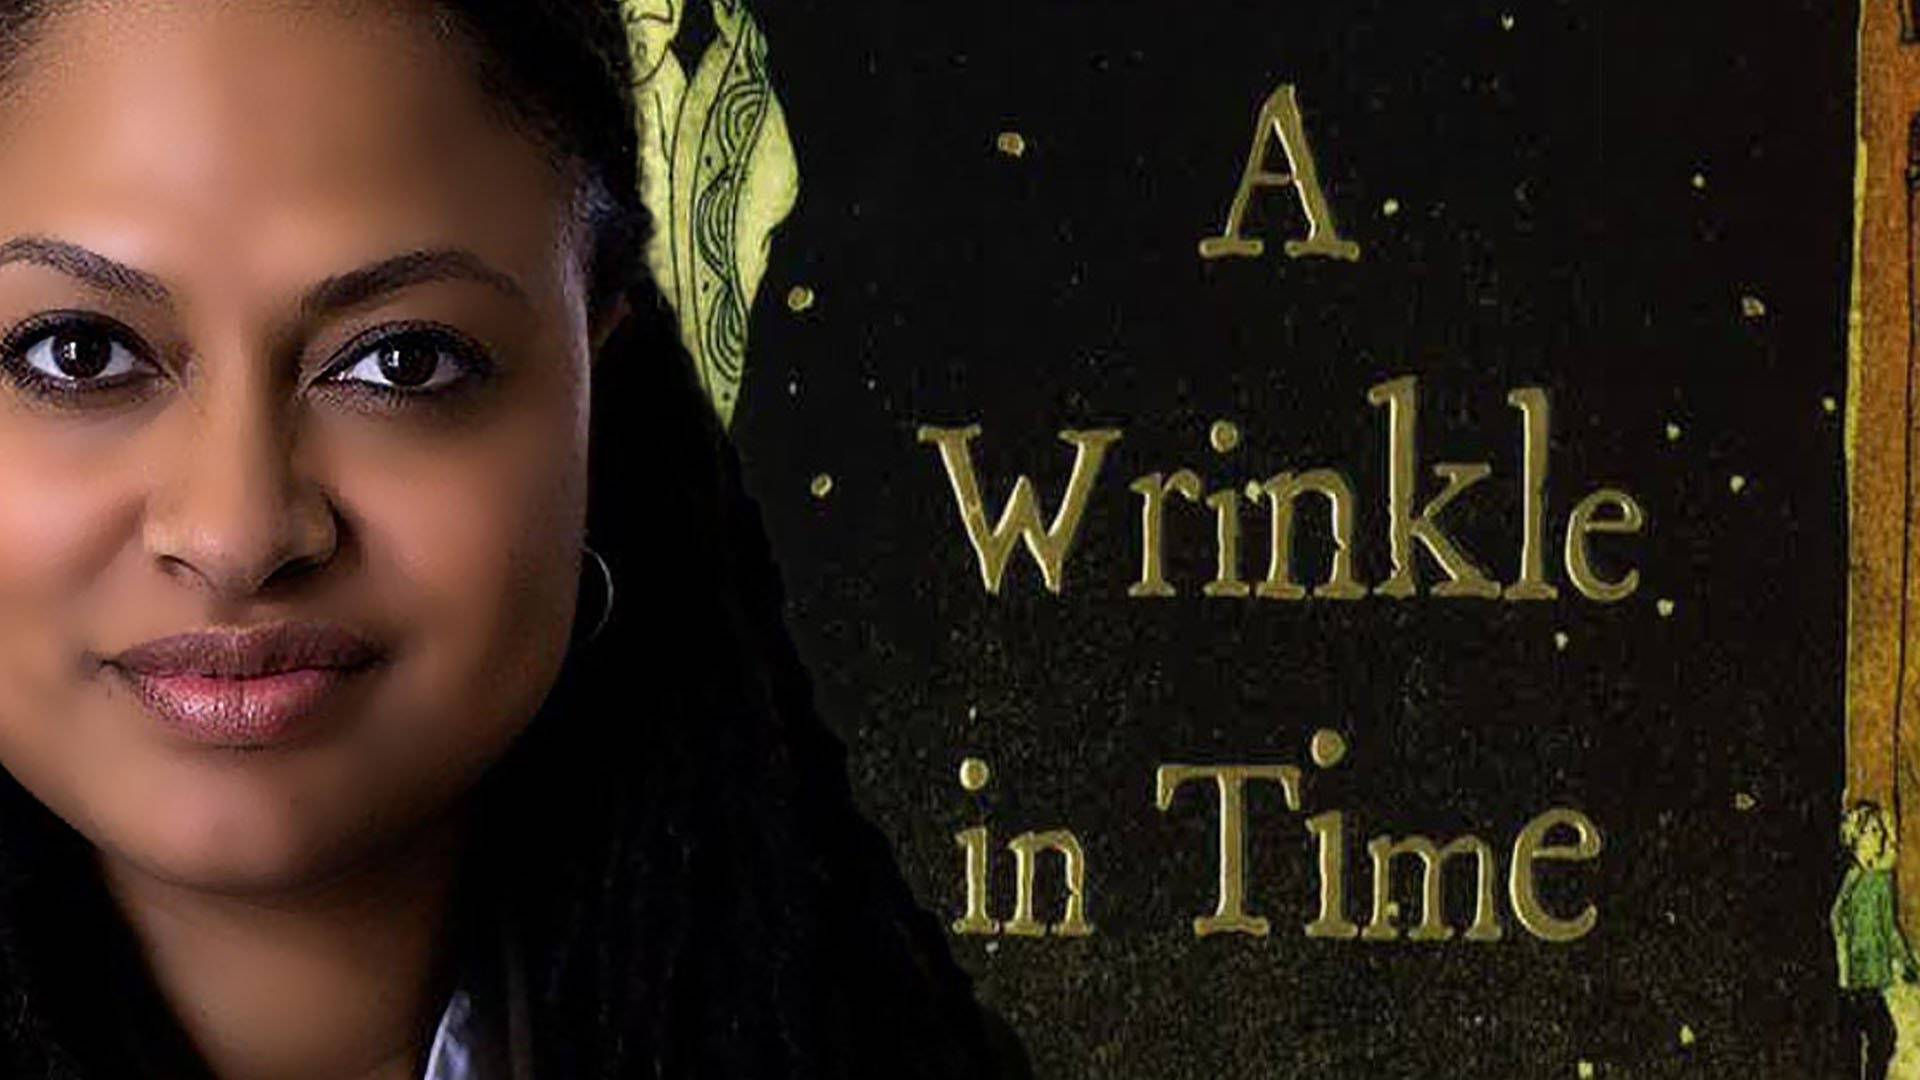 A Wrinkle In Time Release Date Announced